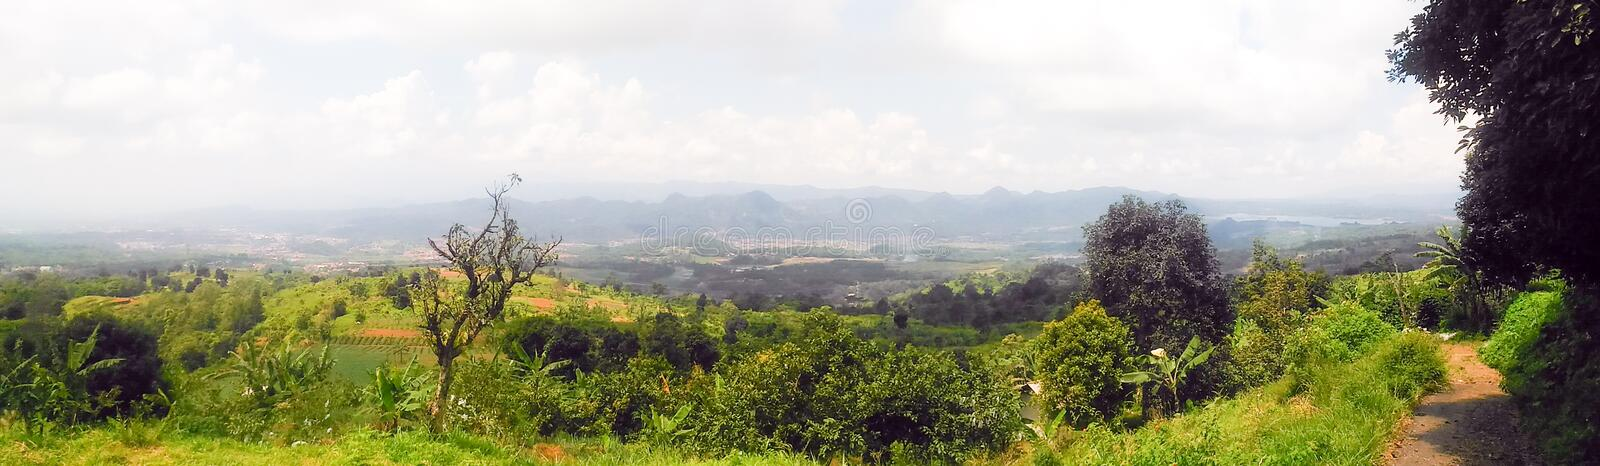 View of the mountains in the west Java of Indonesia royalty free stock images